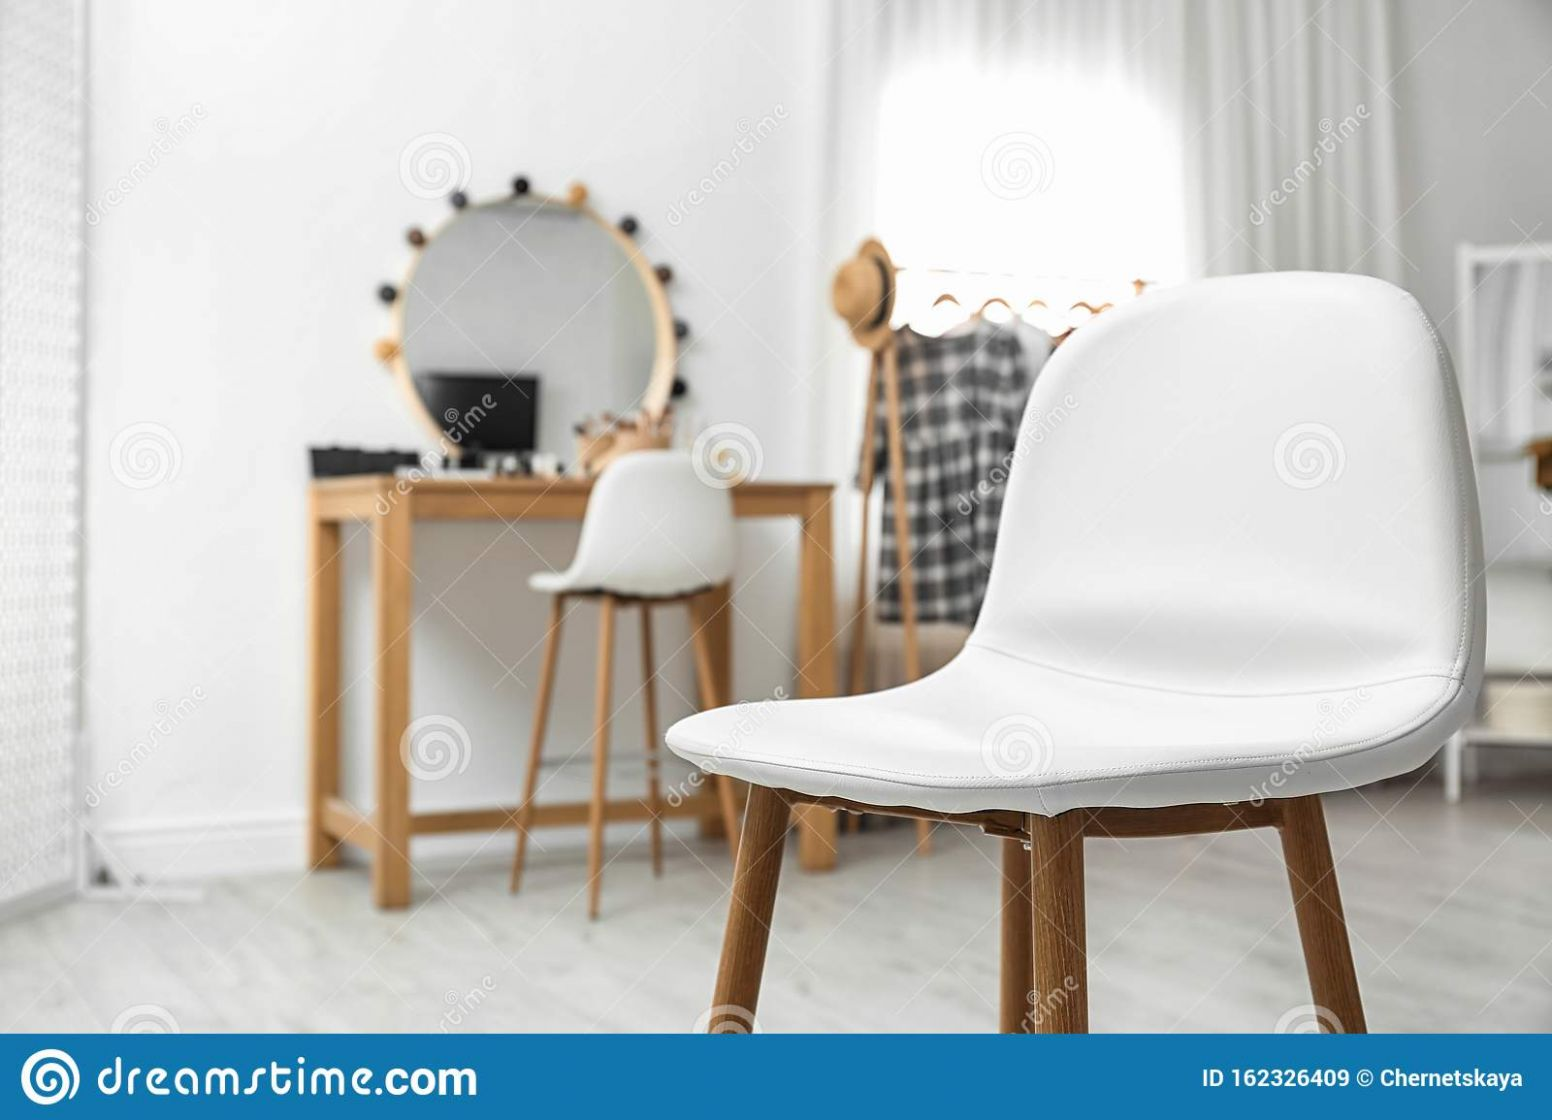 Stylish White Chair In Makeup Room Interior Stock Image - Image of ..